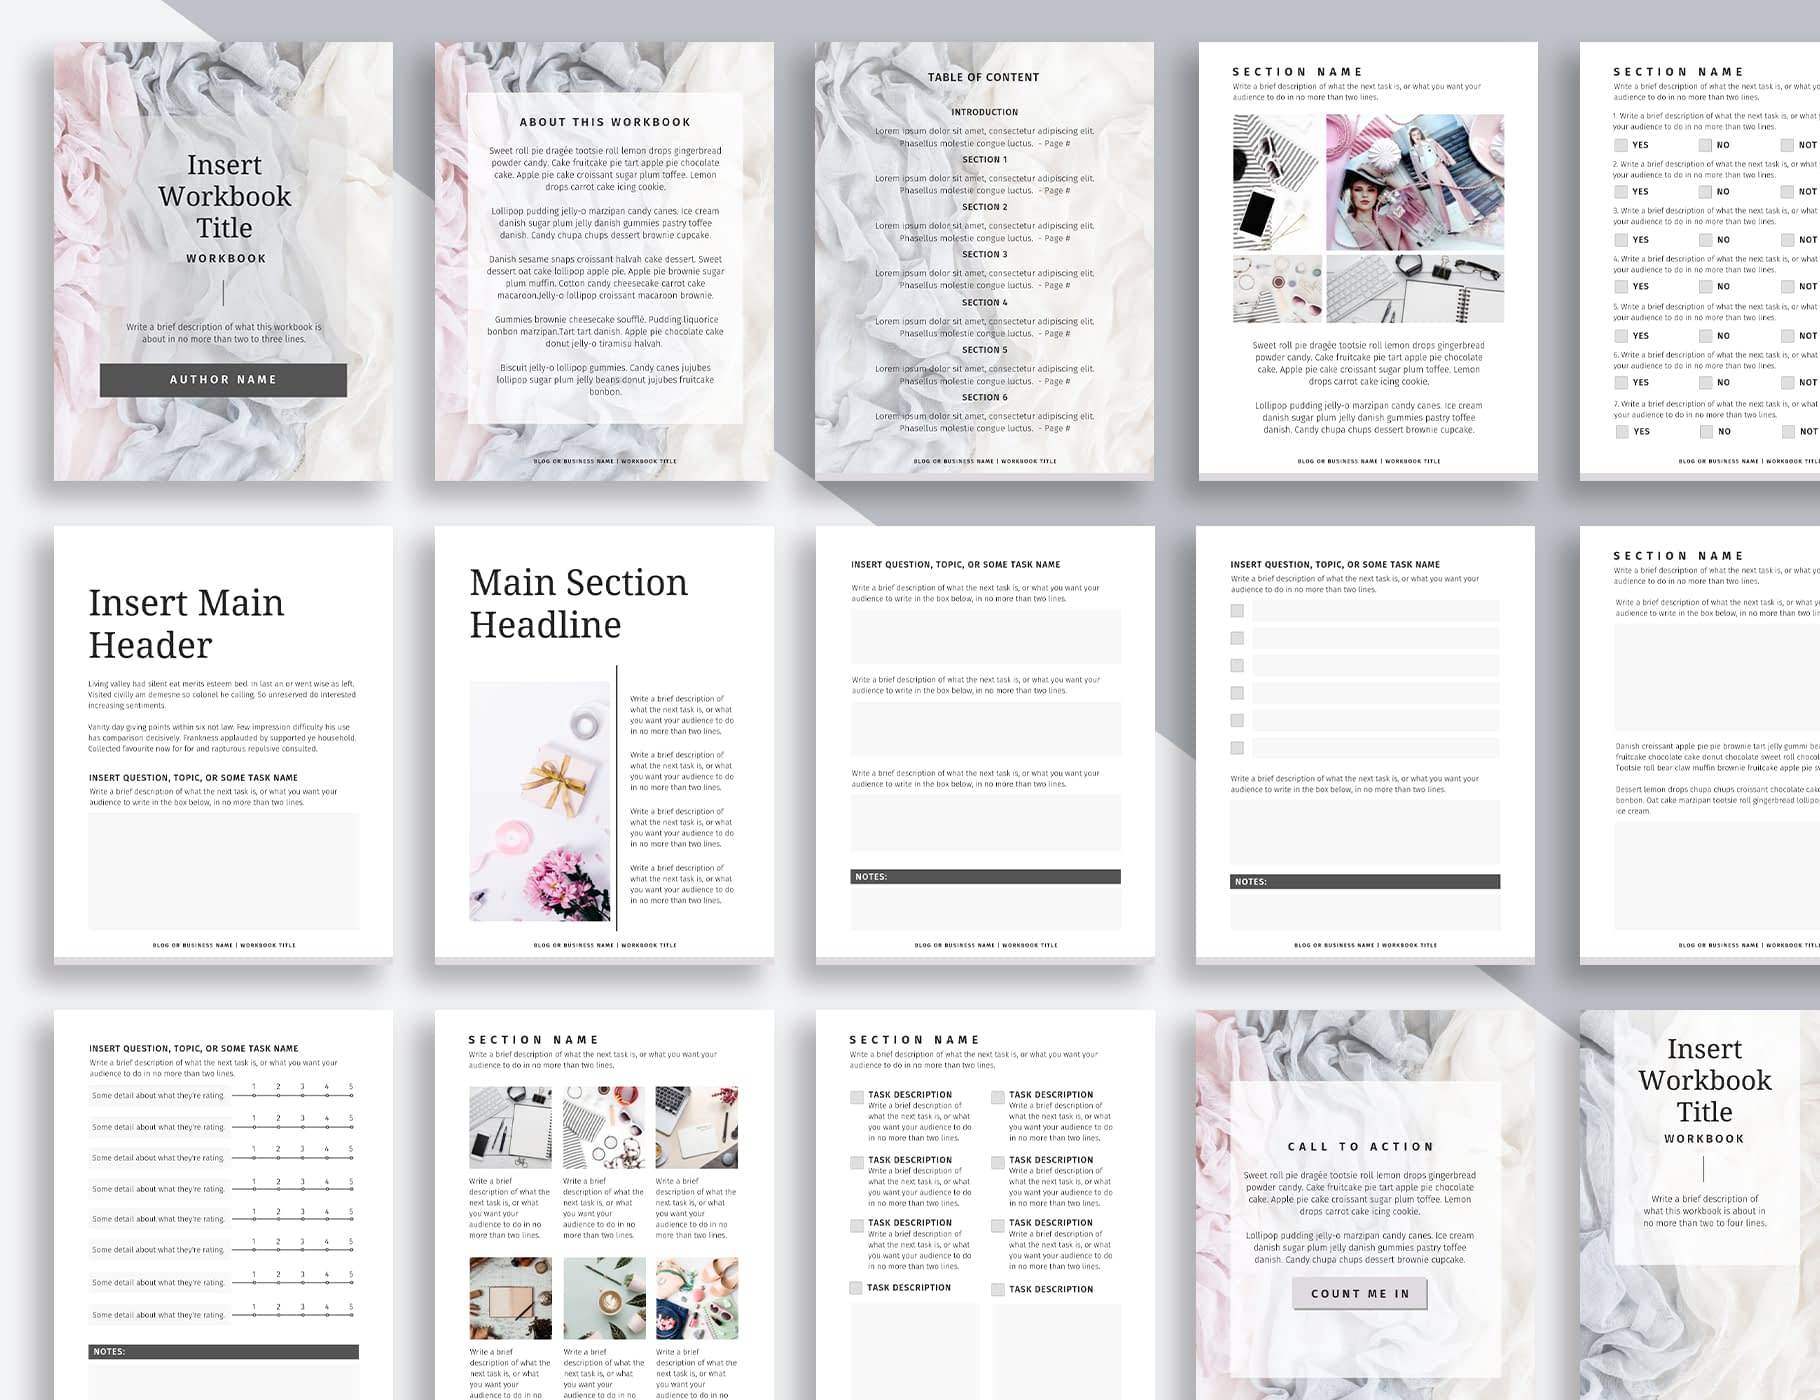 Silver - A workbook template made with Canva.